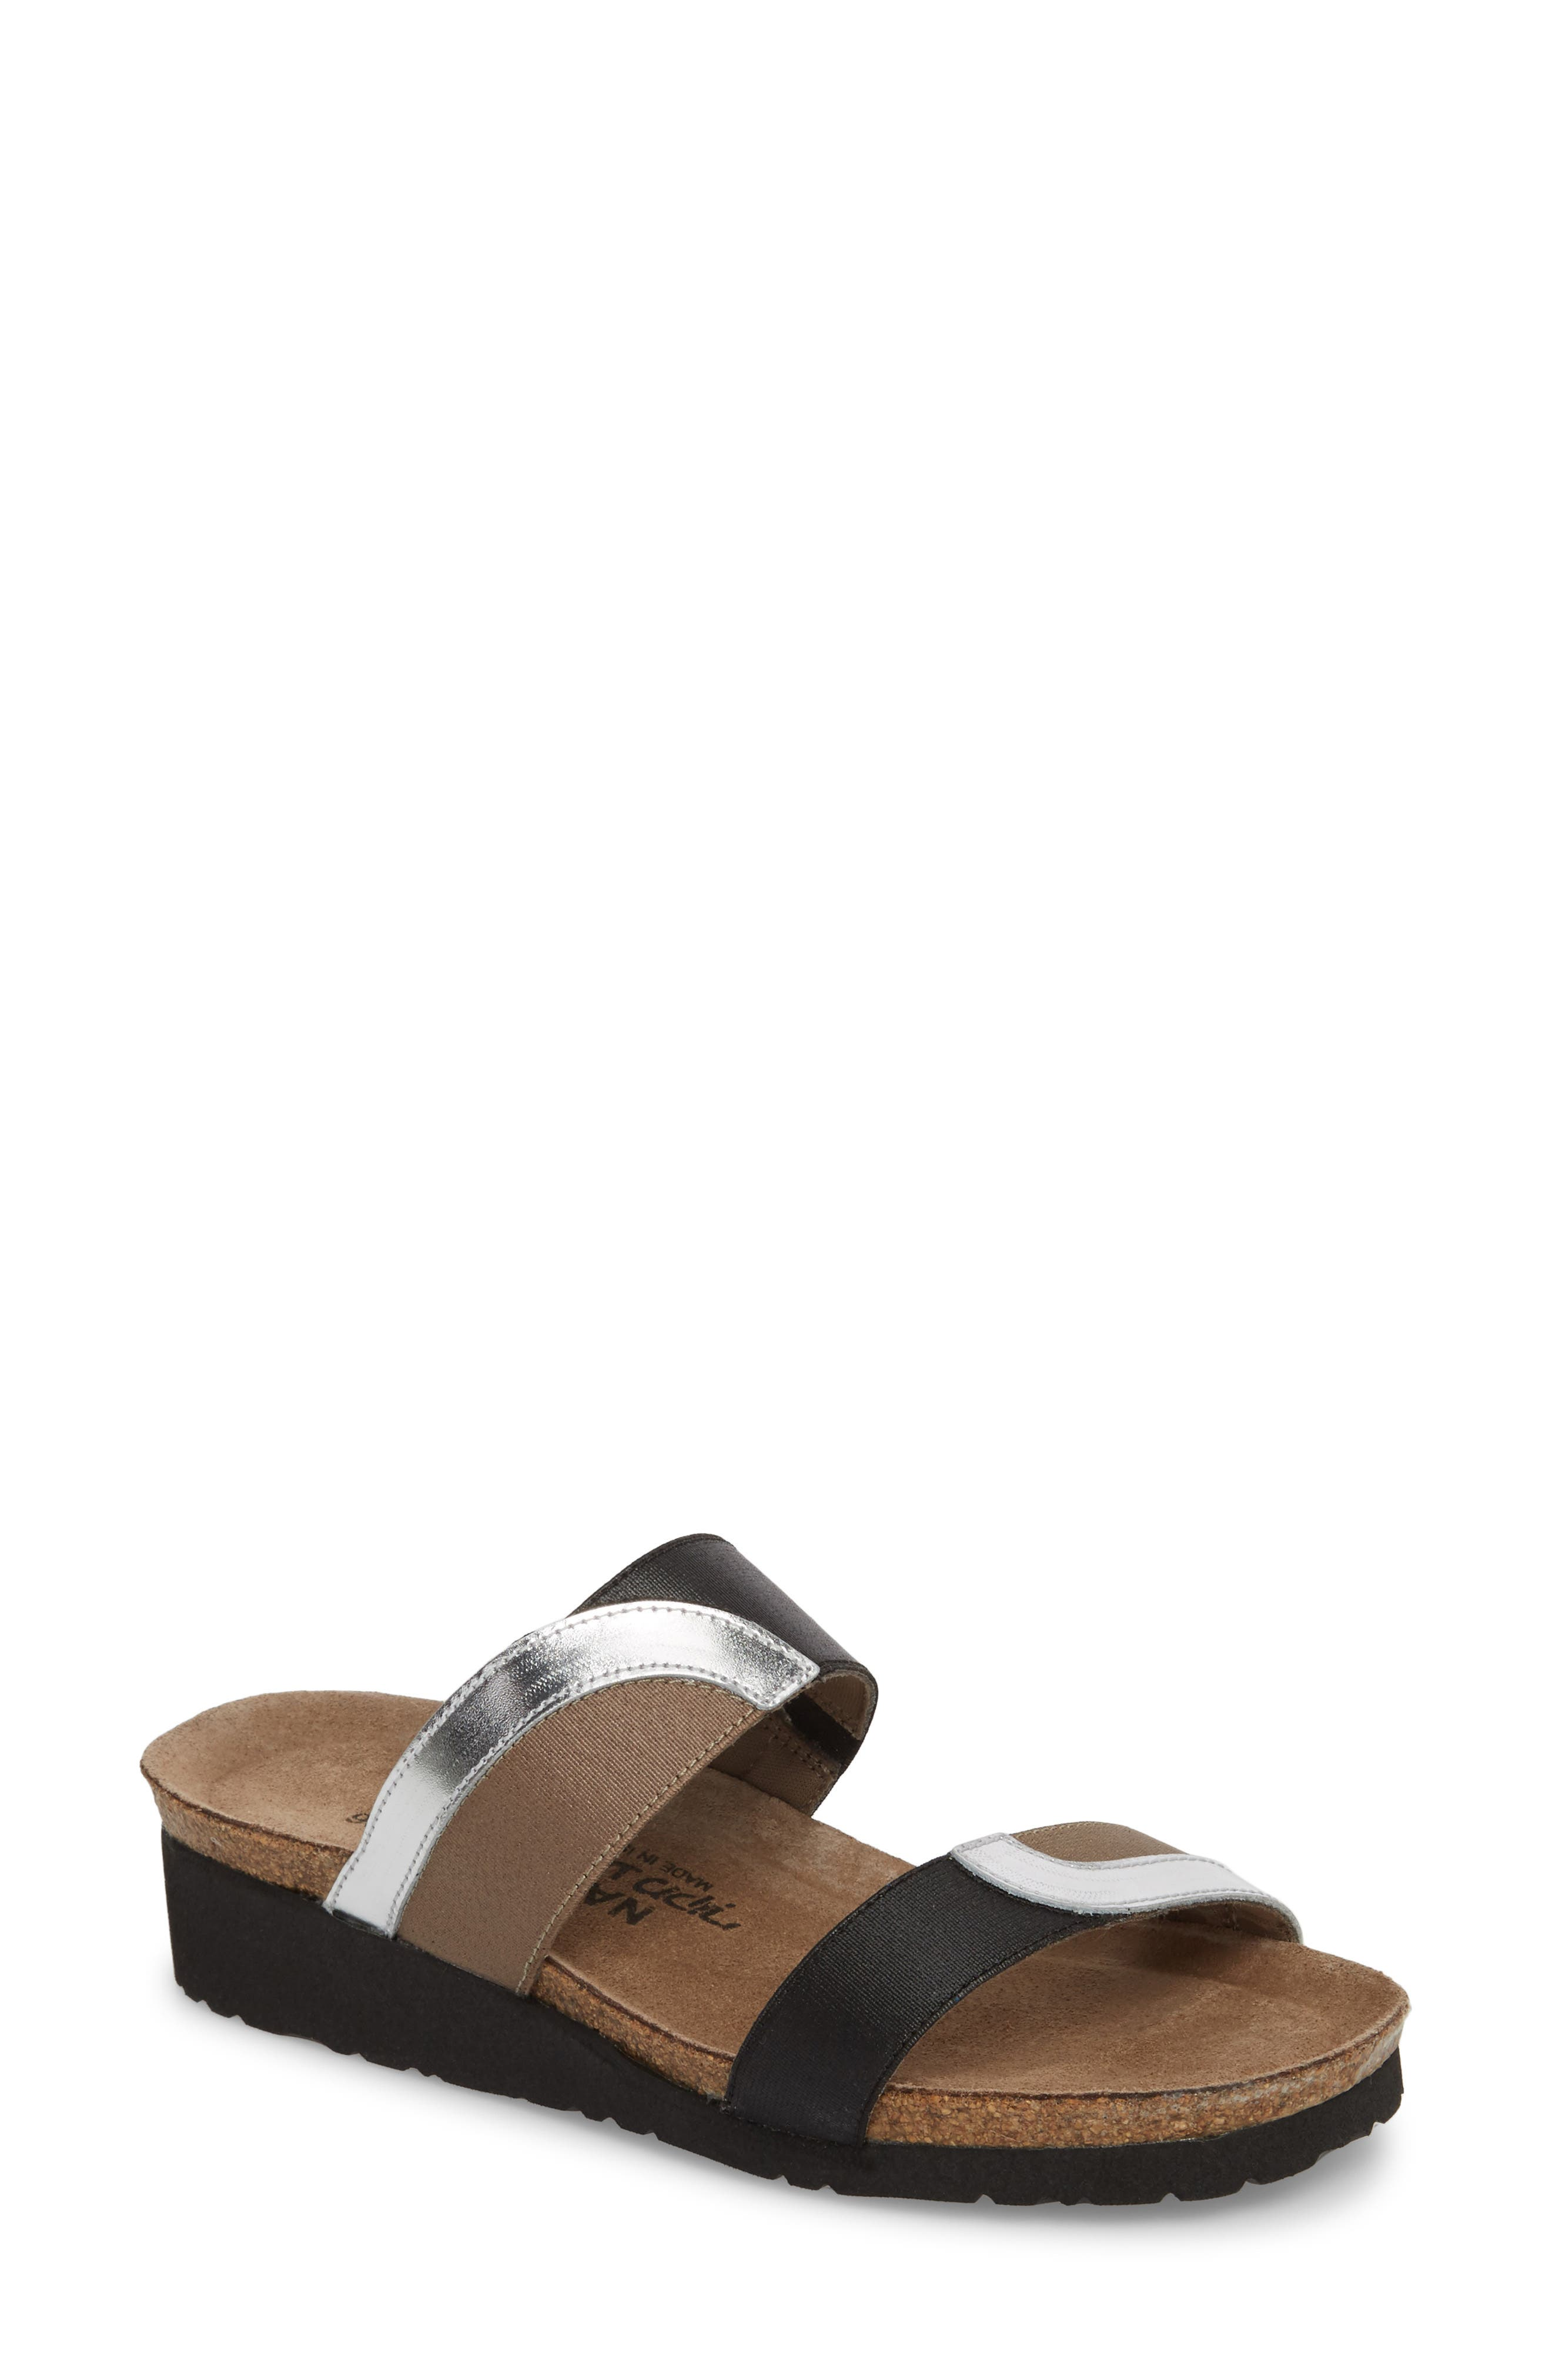 Frankie Slide Sandal,                         Main,                         color, SILVER MIRROR LEATHER